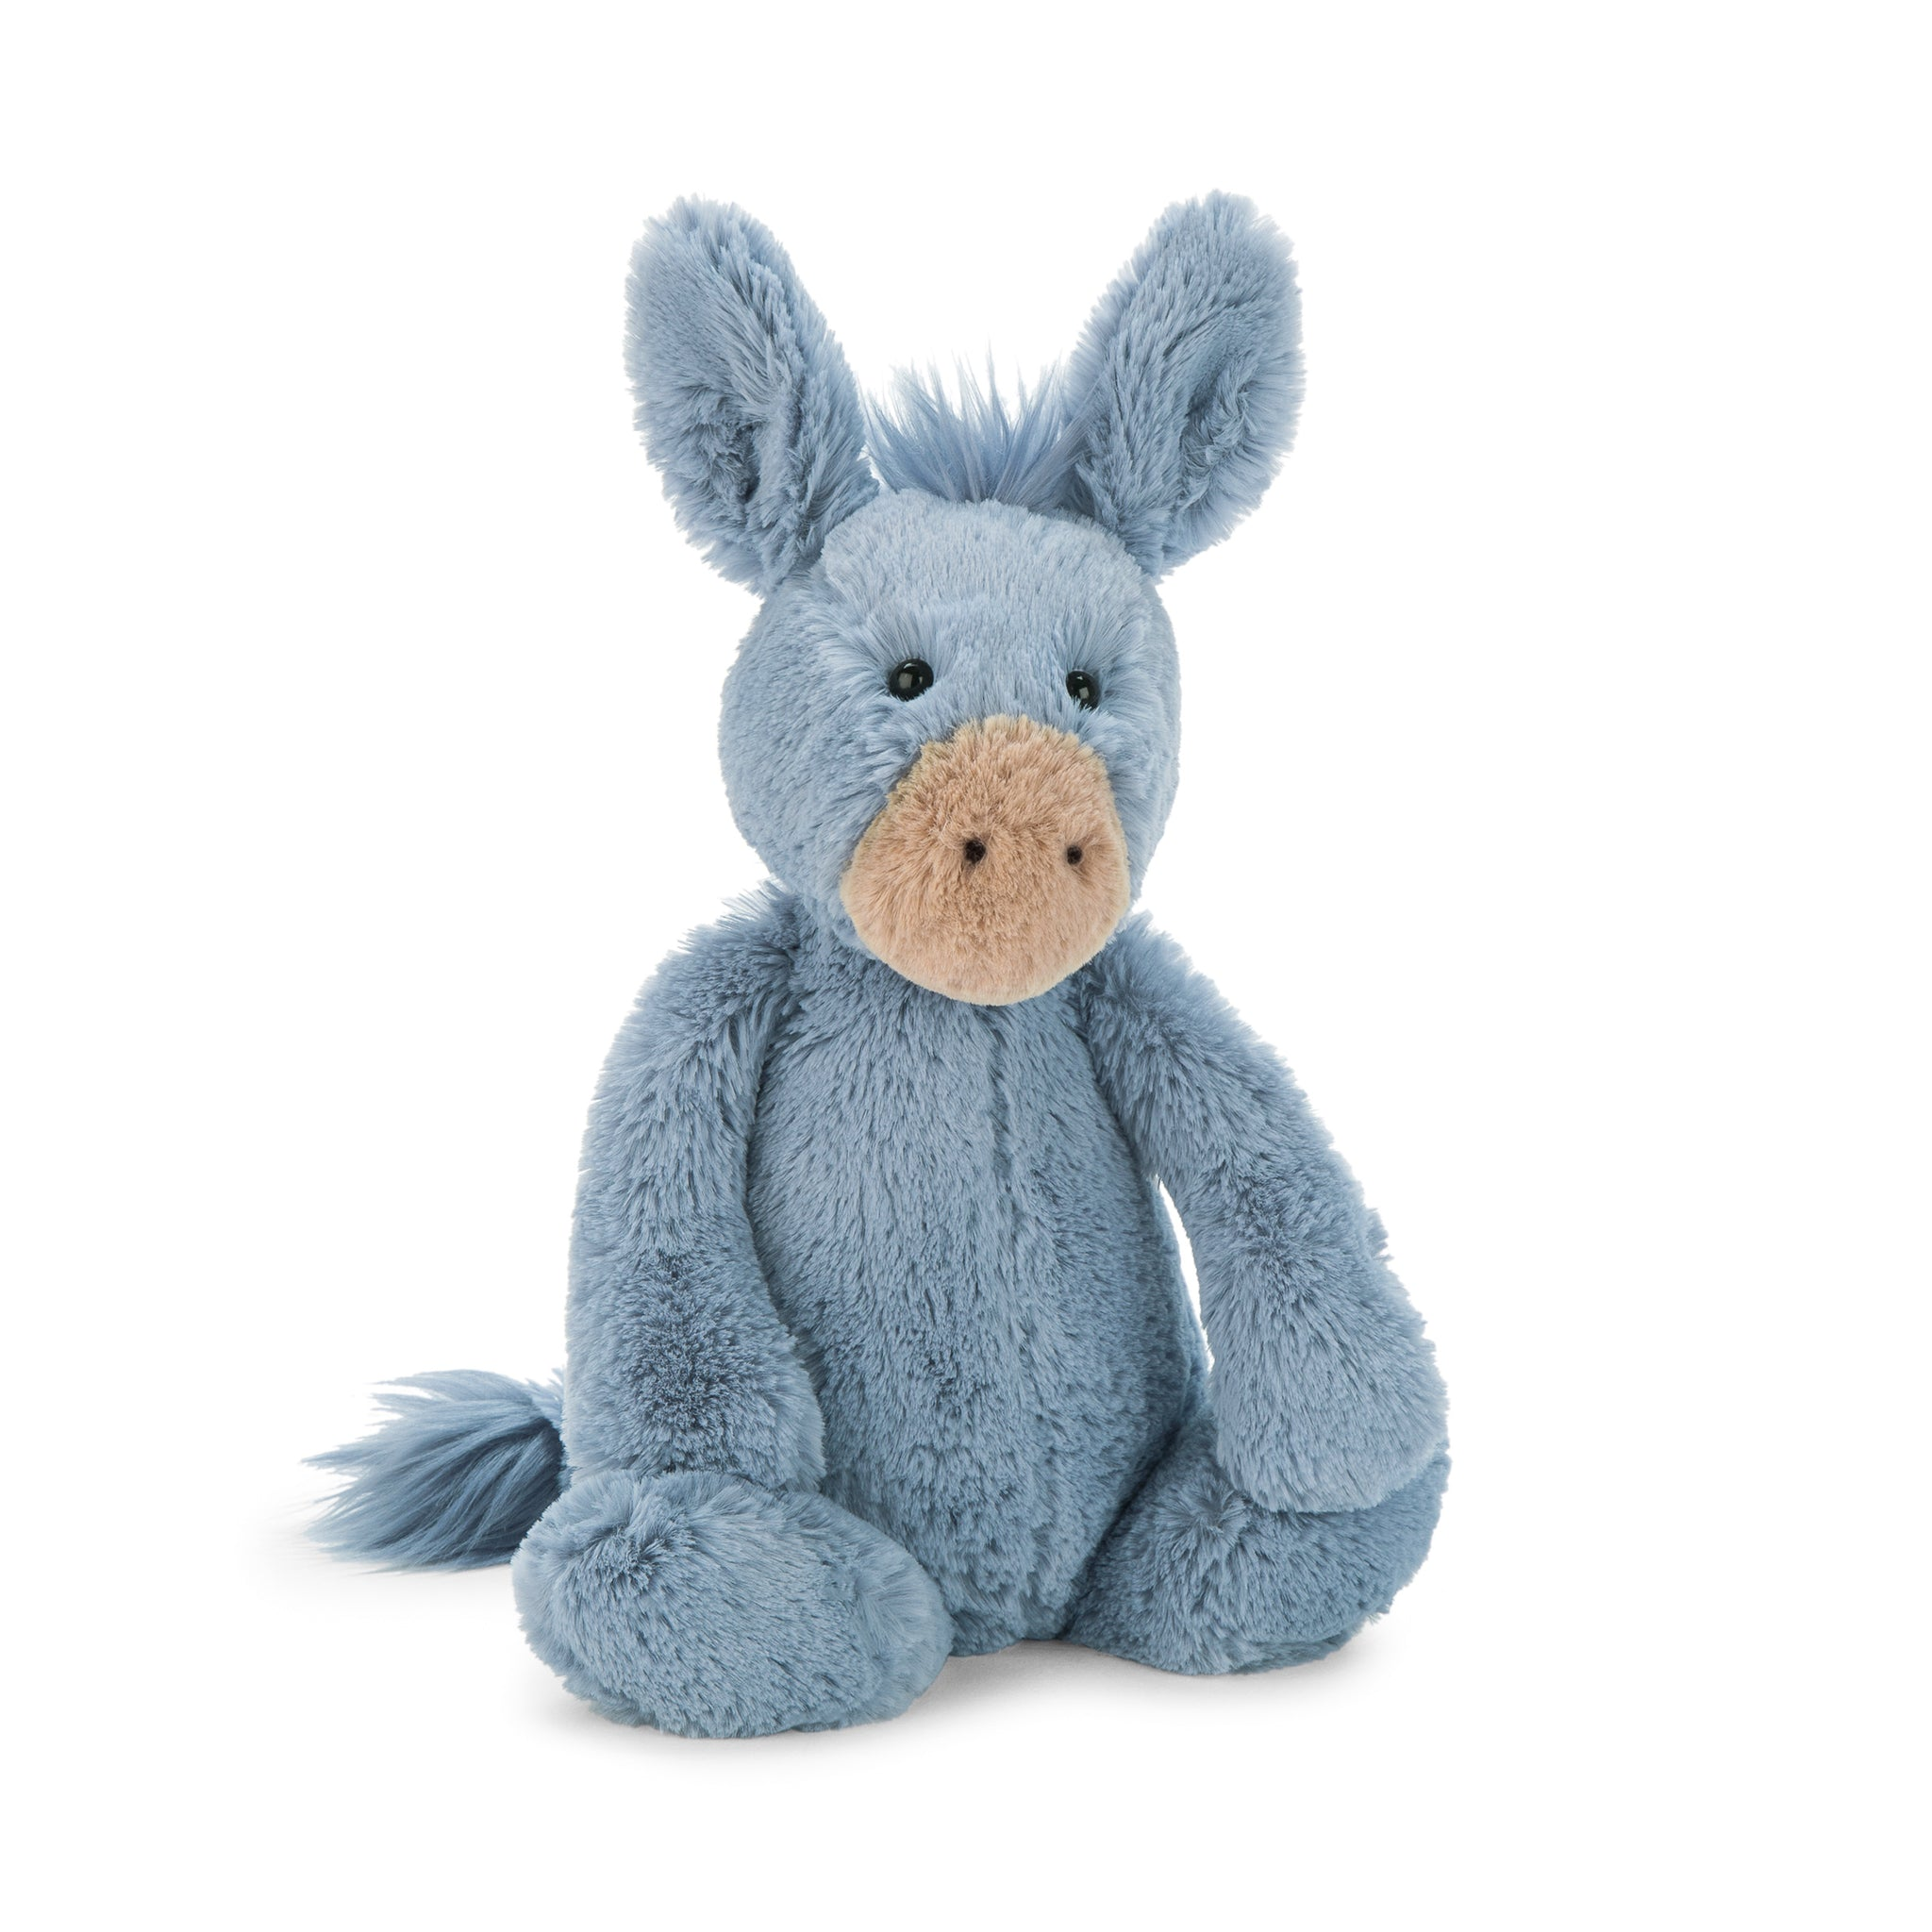 Bashful Donkey Stuffed Animal